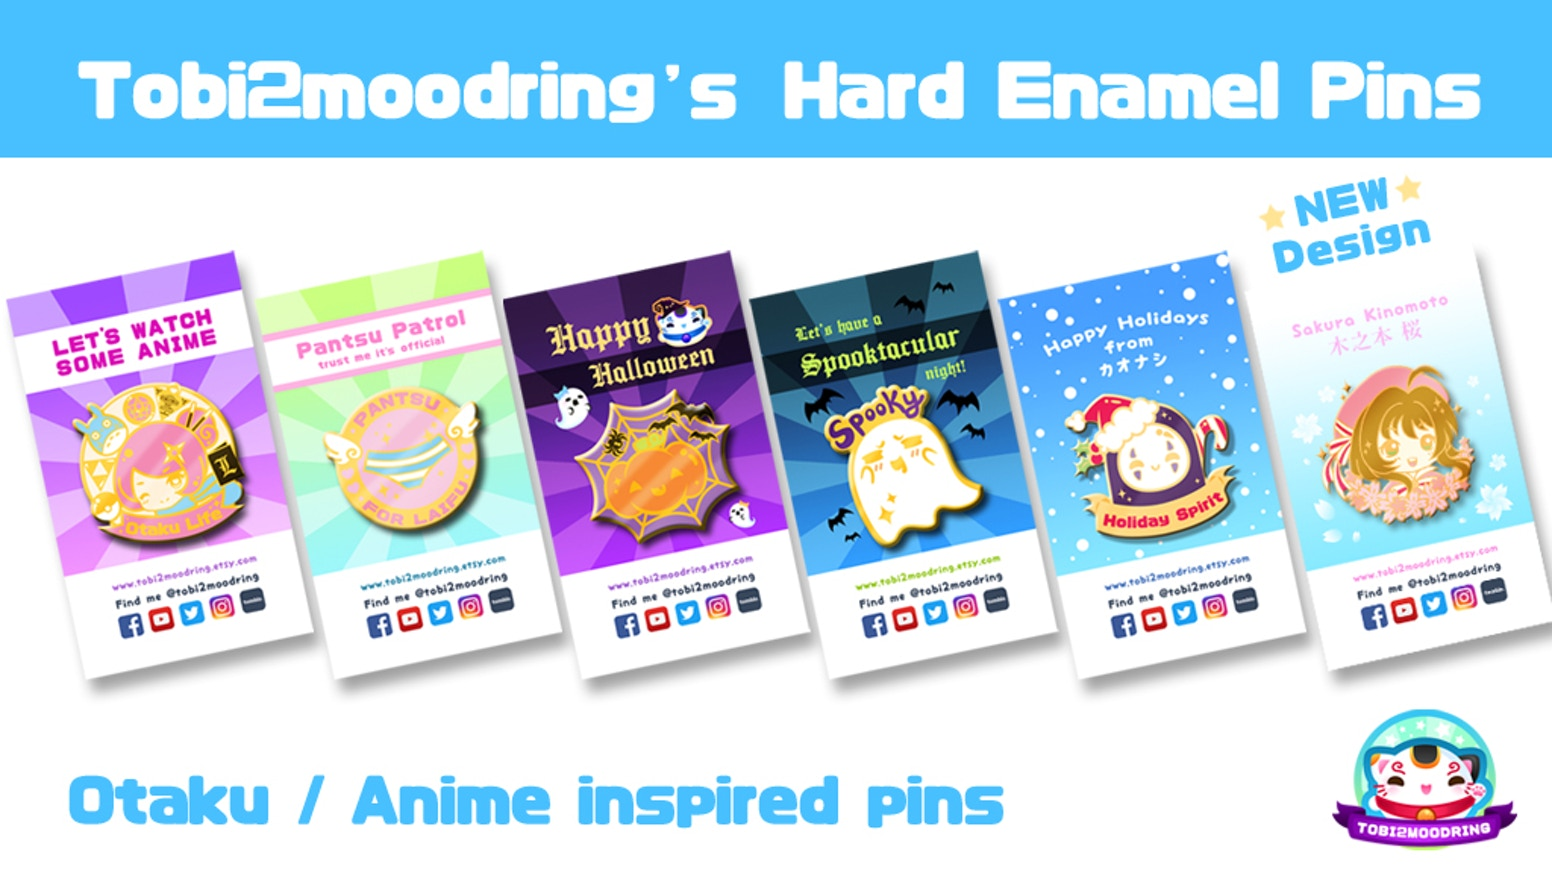 "Anime and otaku related 1.5"" hard enamel pins. 1 Design + 5 Stretch Goal Designs. *ALL GOALS REACHED* Follow me on social media to see updates!~"